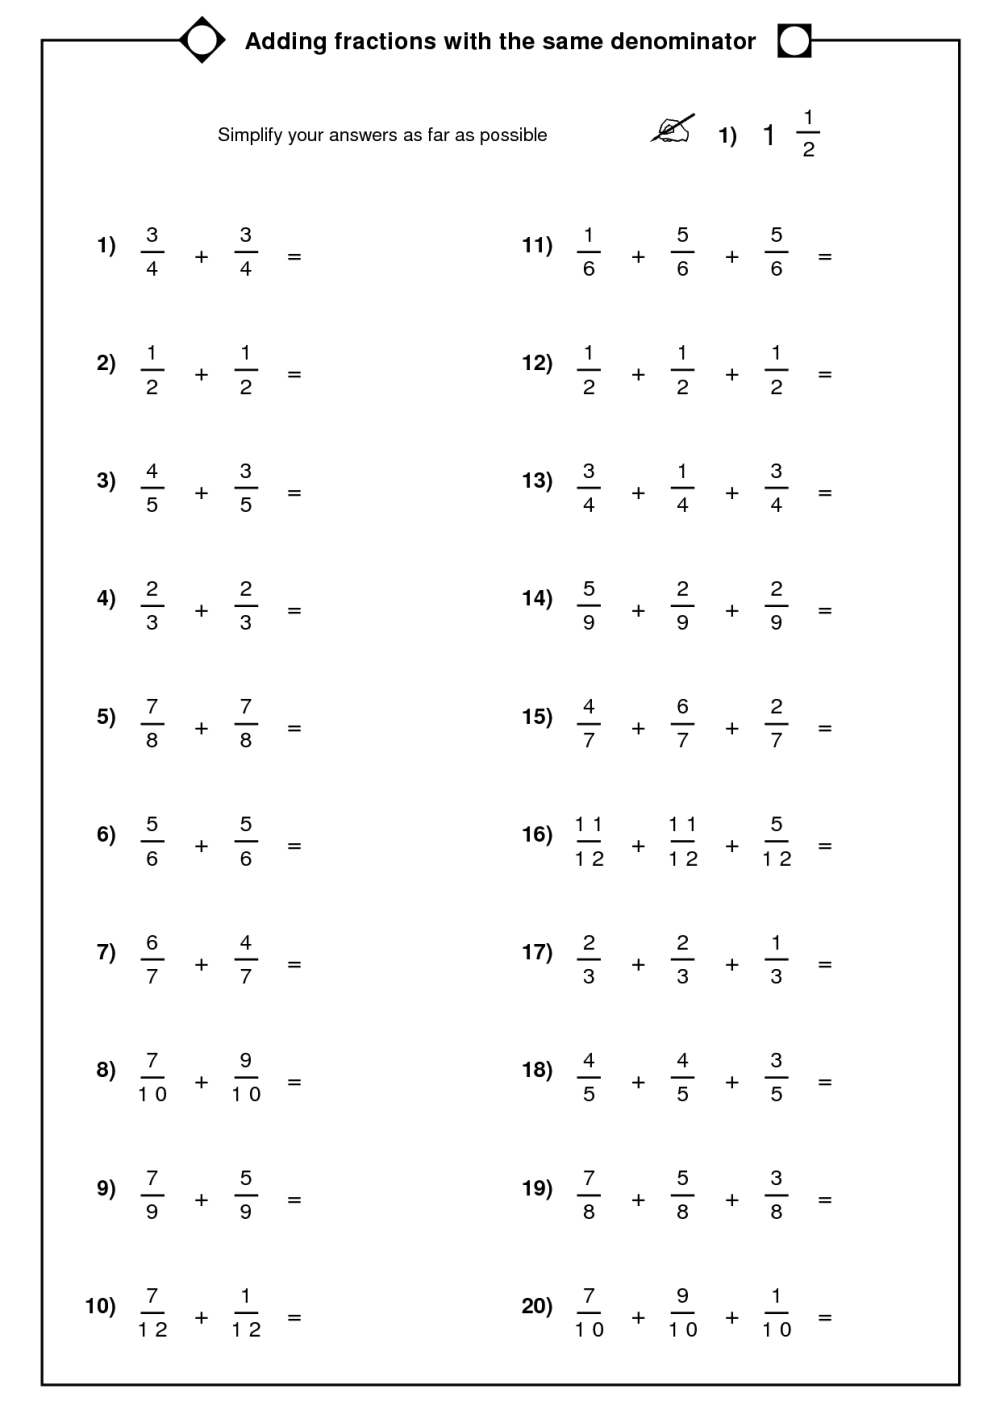 medium resolution of Adding Fractions With Same Denominator Worksheet   Printable Worksheets and  Activities for Teachers